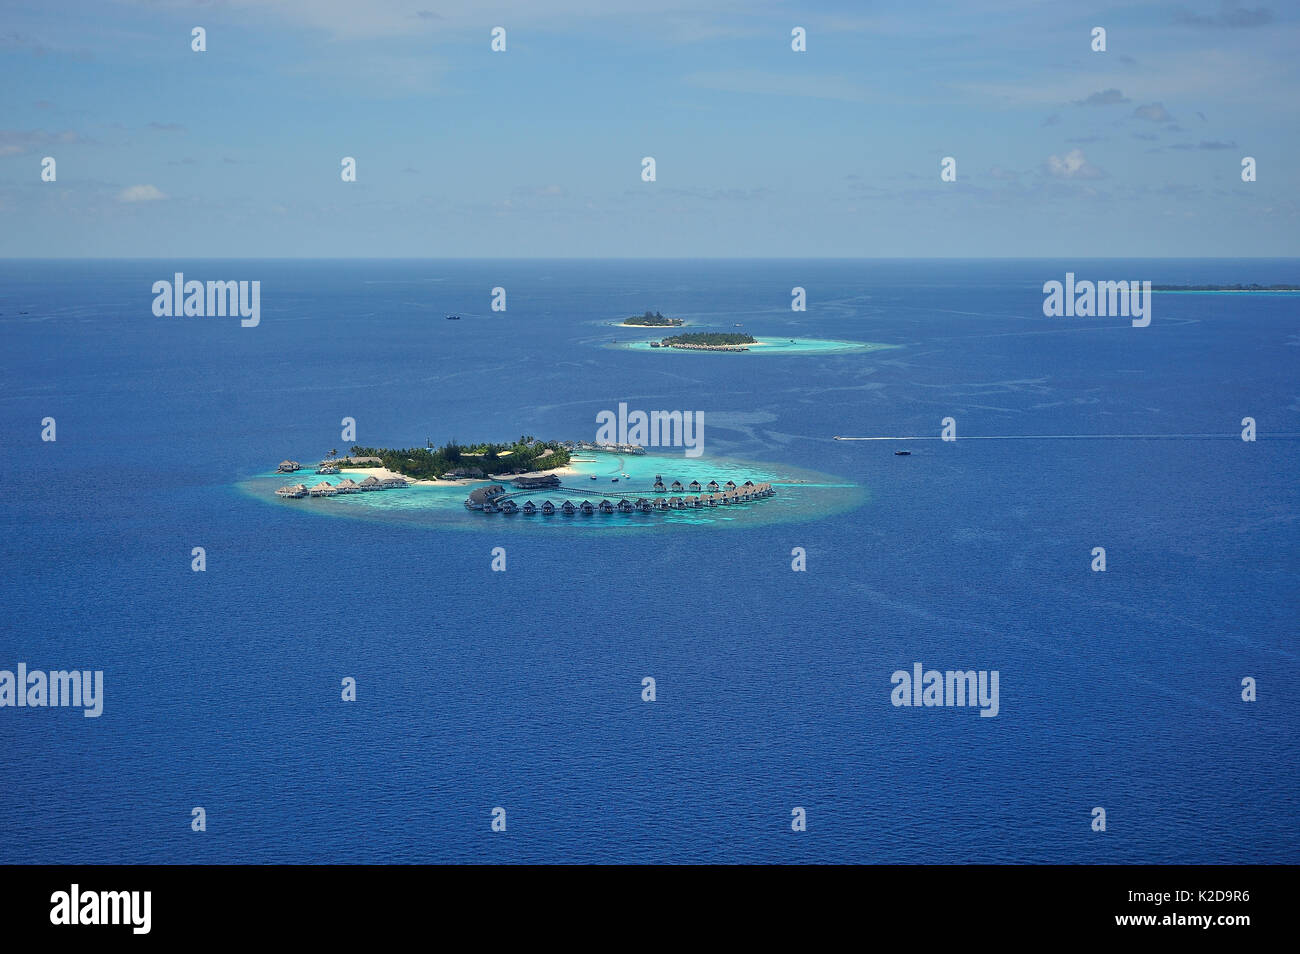 Aerial view of the islets and the lagoons which make the atoll, Maldives, Indian Ocean - Stock Image